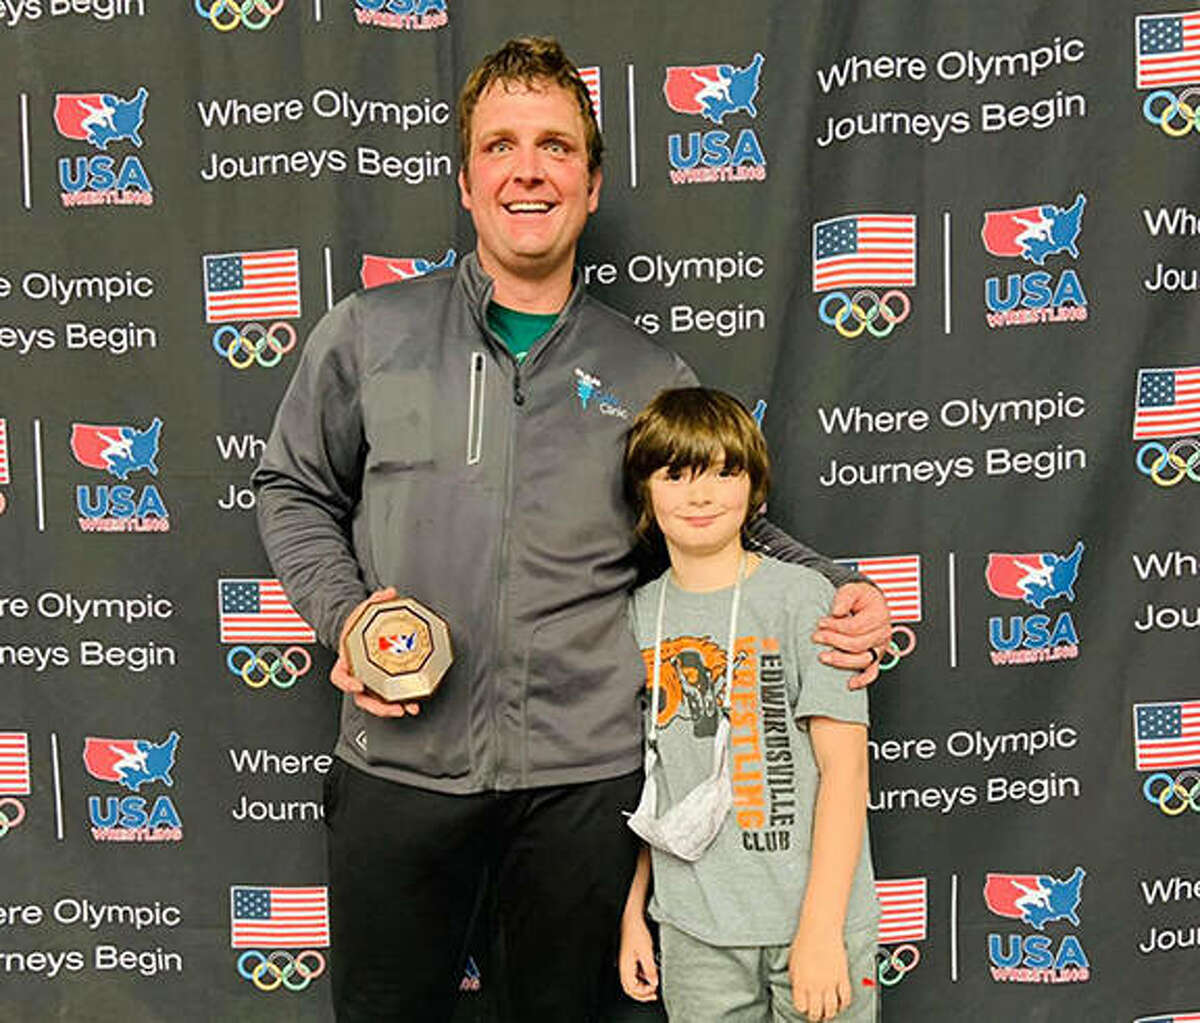 Dr. Mike Harbison, owner of iCAN Clinic in Edwardsville, with his son, Hewitt, at the Folkstyle Nationals Championships, held April 1-3 at the University of Northern Iowa in Cedar Rapids, Iowa. Harbison will wrestle for Team USA at the Veterans World Championships, set for Oct. 18-22 in Loutraki, Greece.